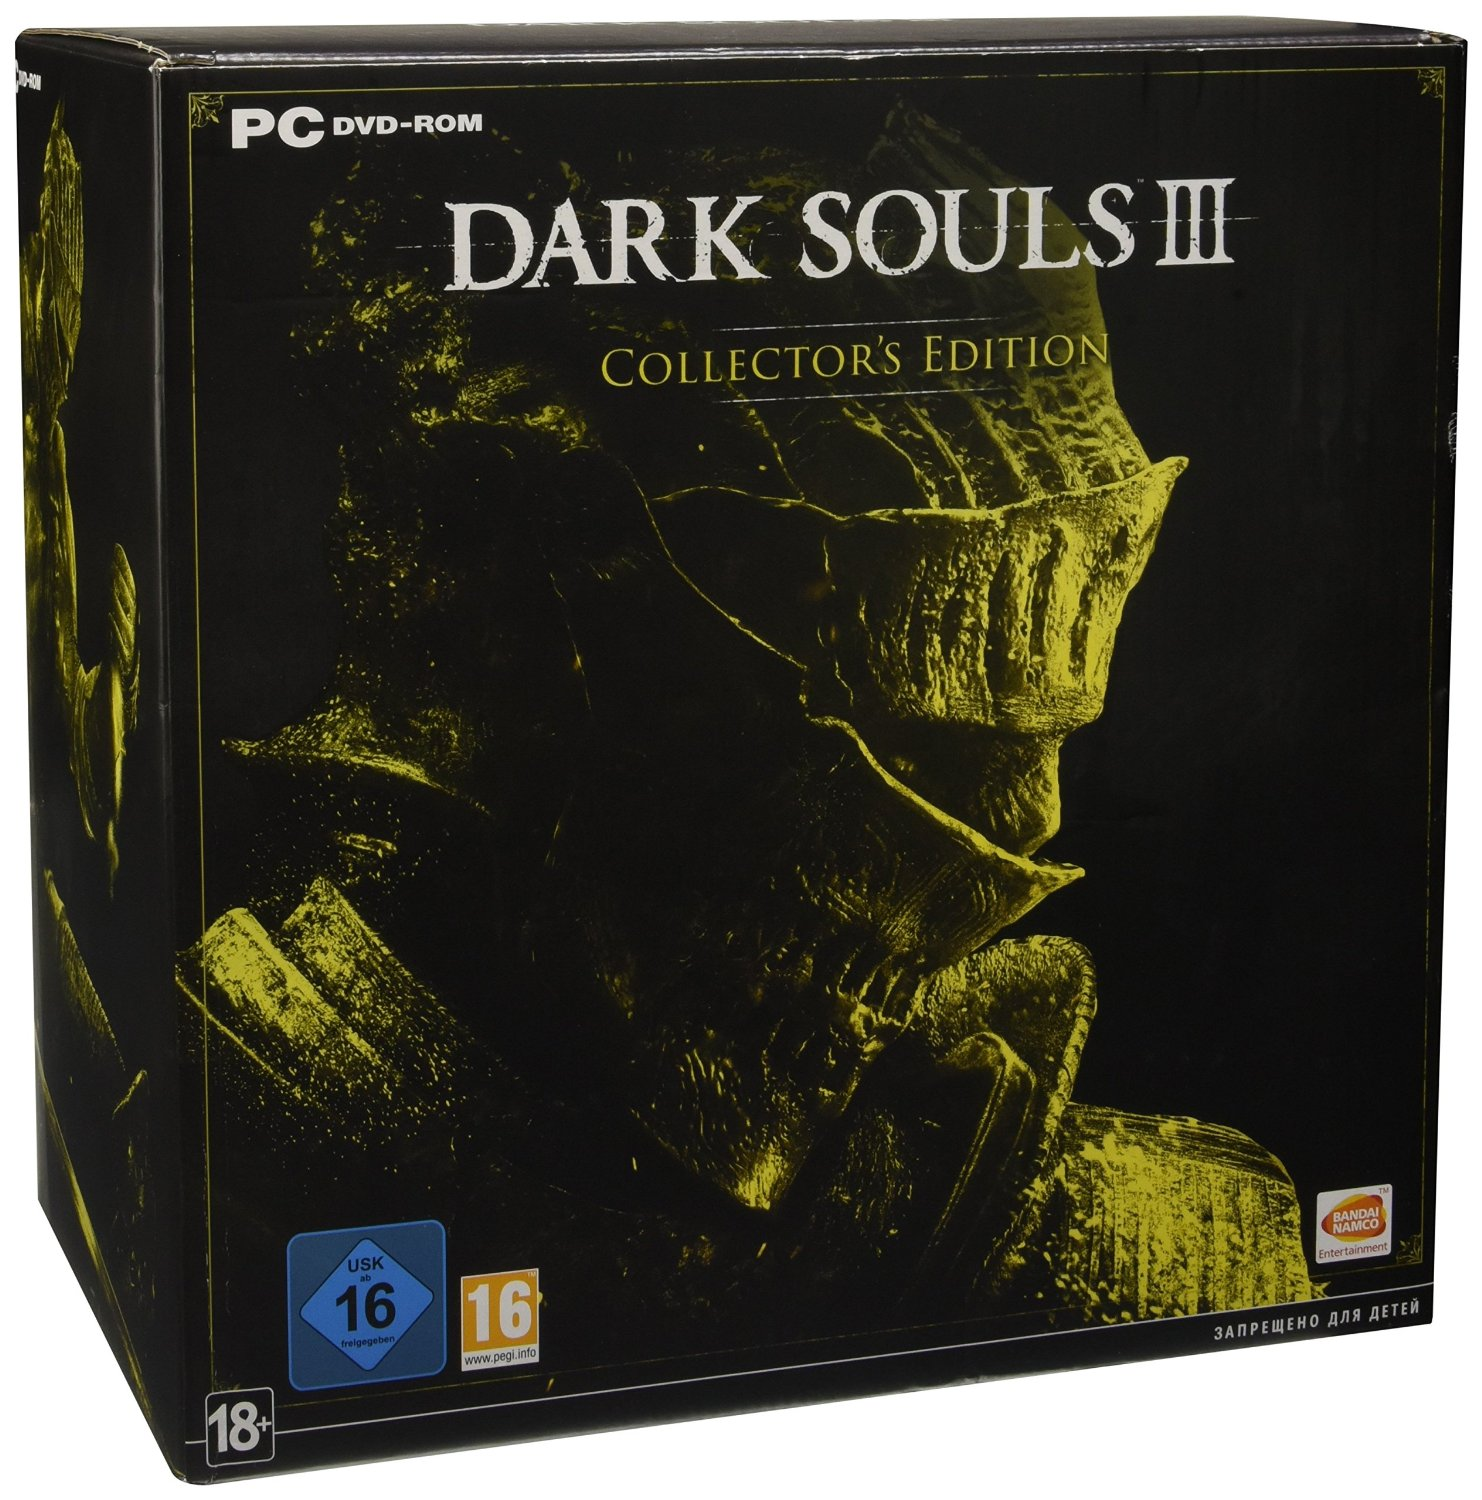 Dark Souls III (Collector's Edition) PC издание в Европе